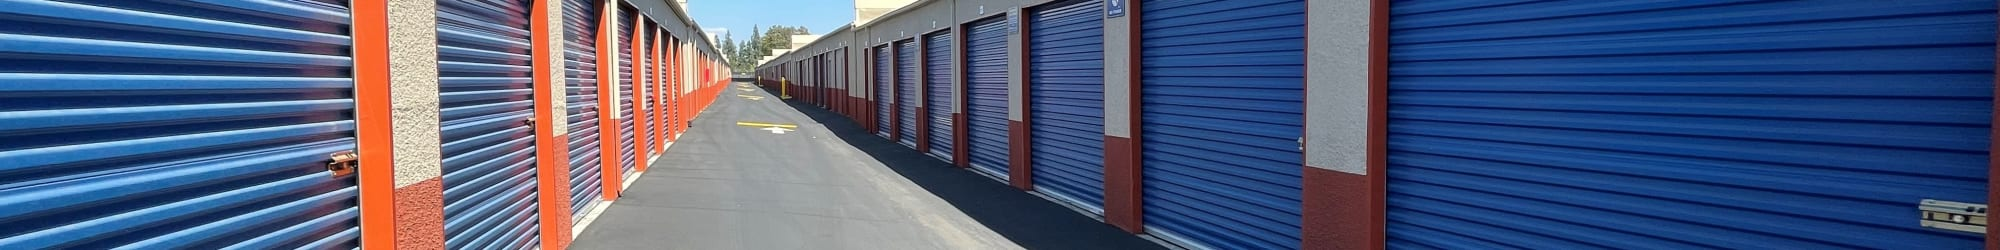 Reviews for Storage Solutions in Pomona, California